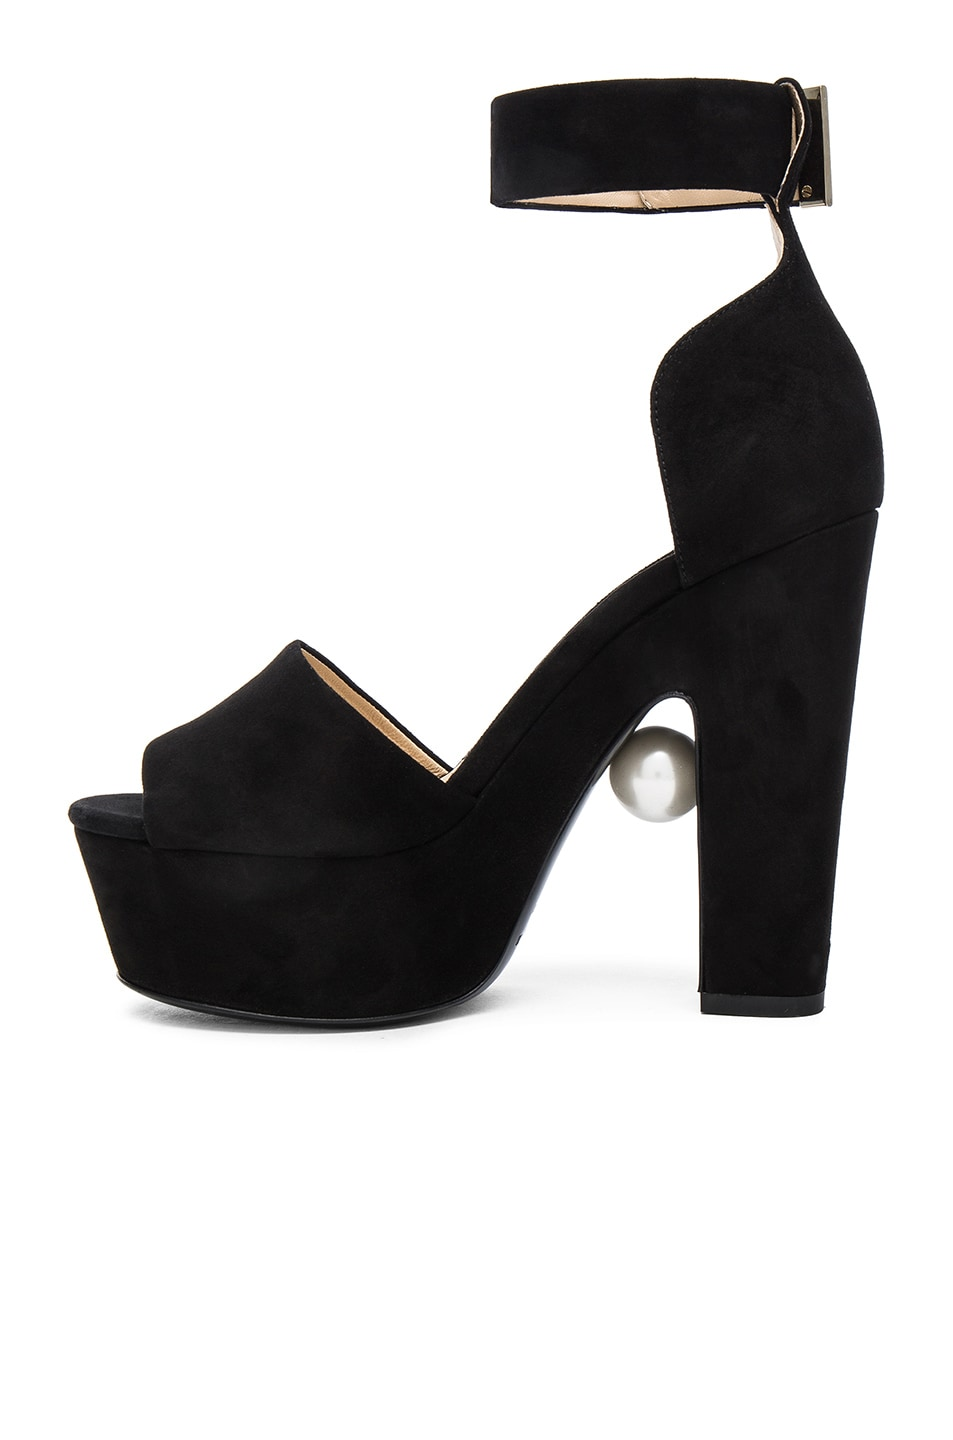 Image 5 of Nicholas Kirkwood 130mm Pearl Strap Heels in Black Suede